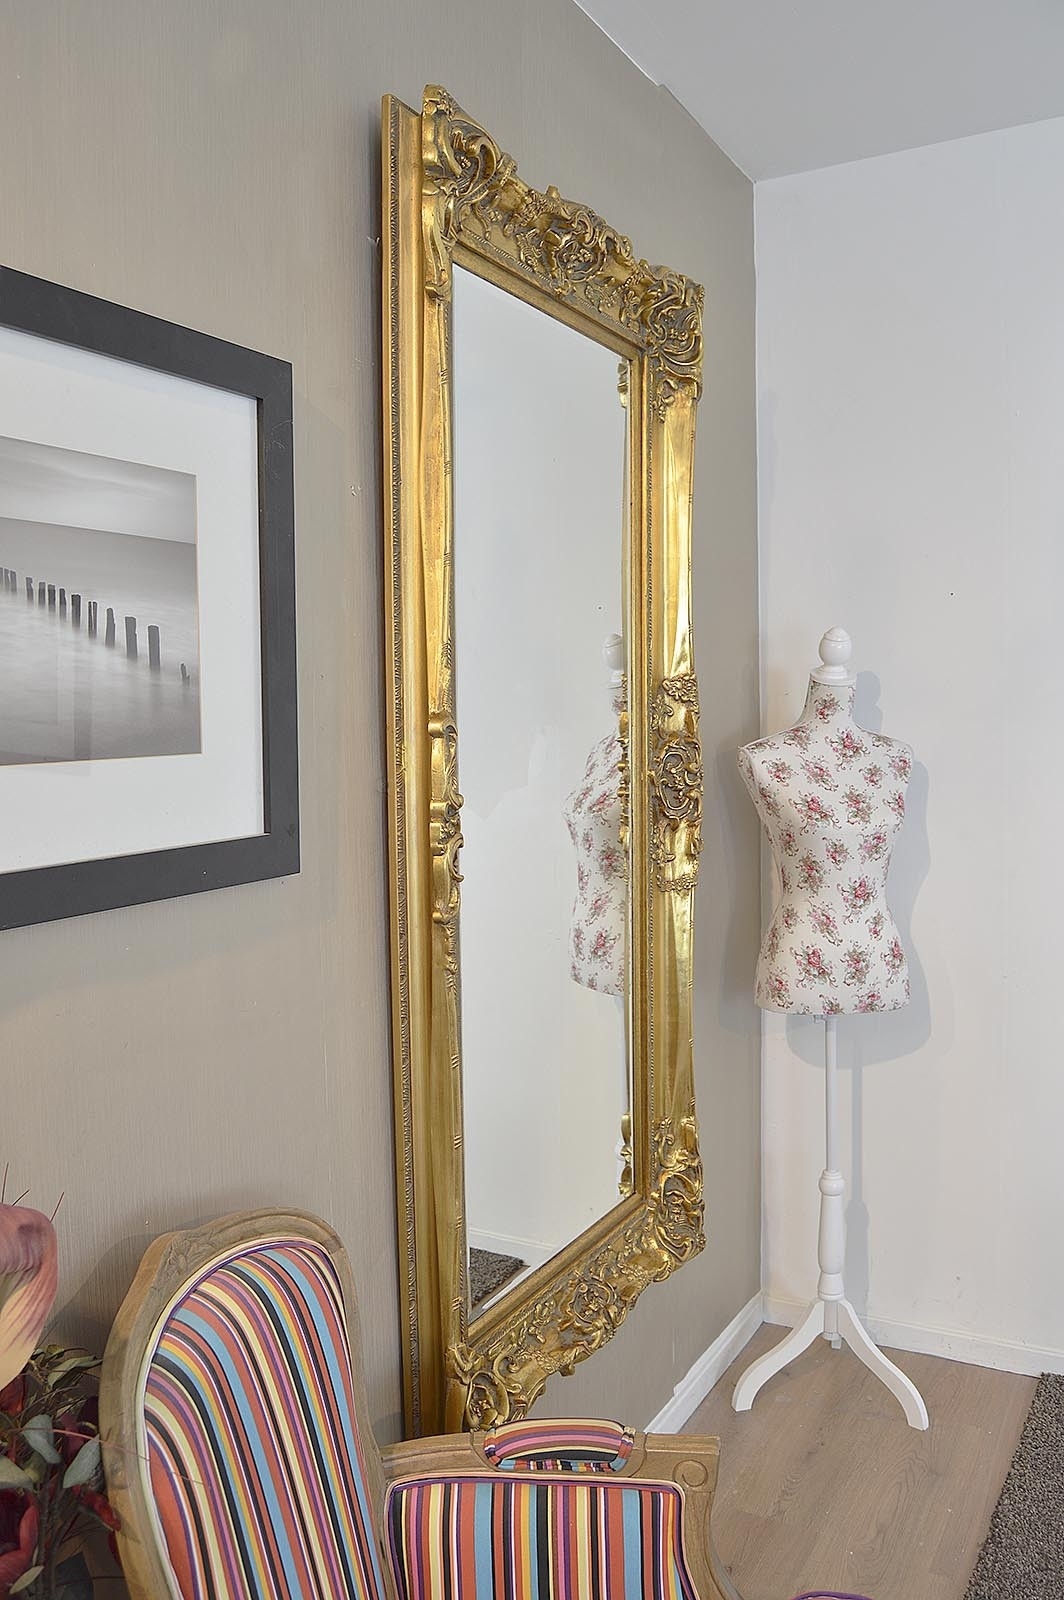 Frame Gold Antique Shab Chic Ornate Wall Mirror 6ft X 3ft 183 X Throughout Shabby Chic Gold Mirror (Image 7 of 15)